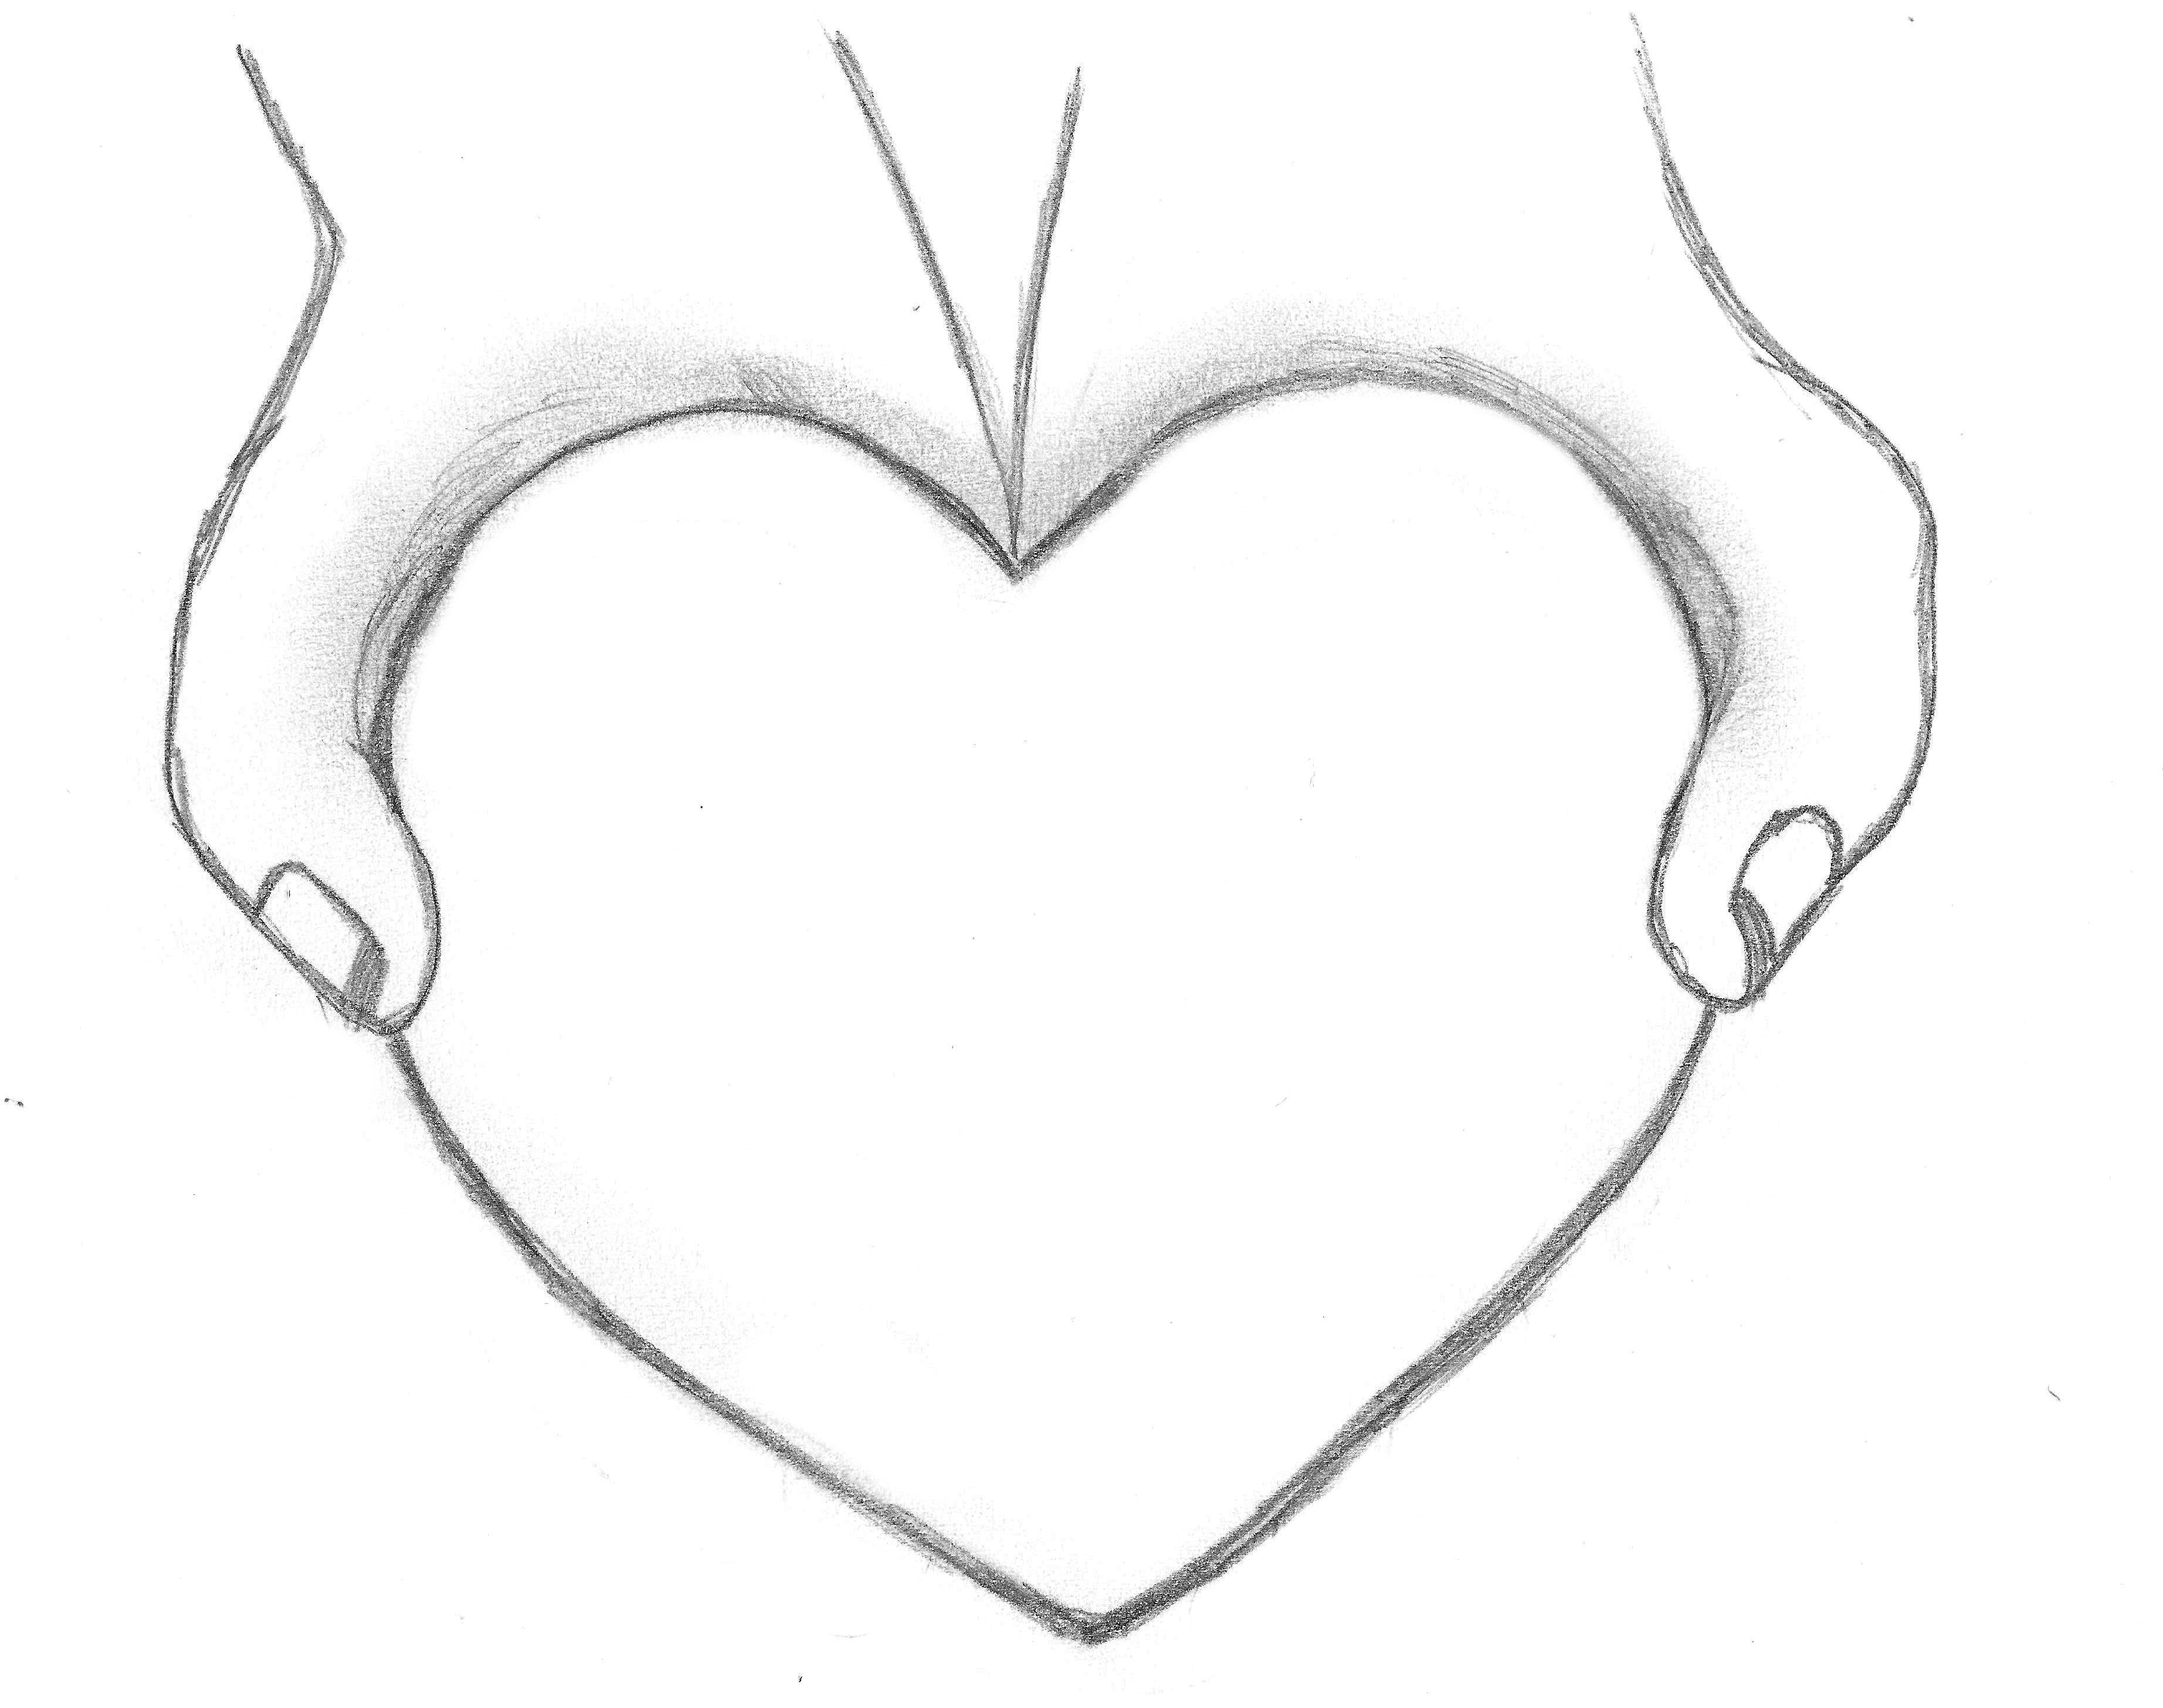 3688x2912 Heart Drawings For Your Boyfriend How To Draw Heart With Banner